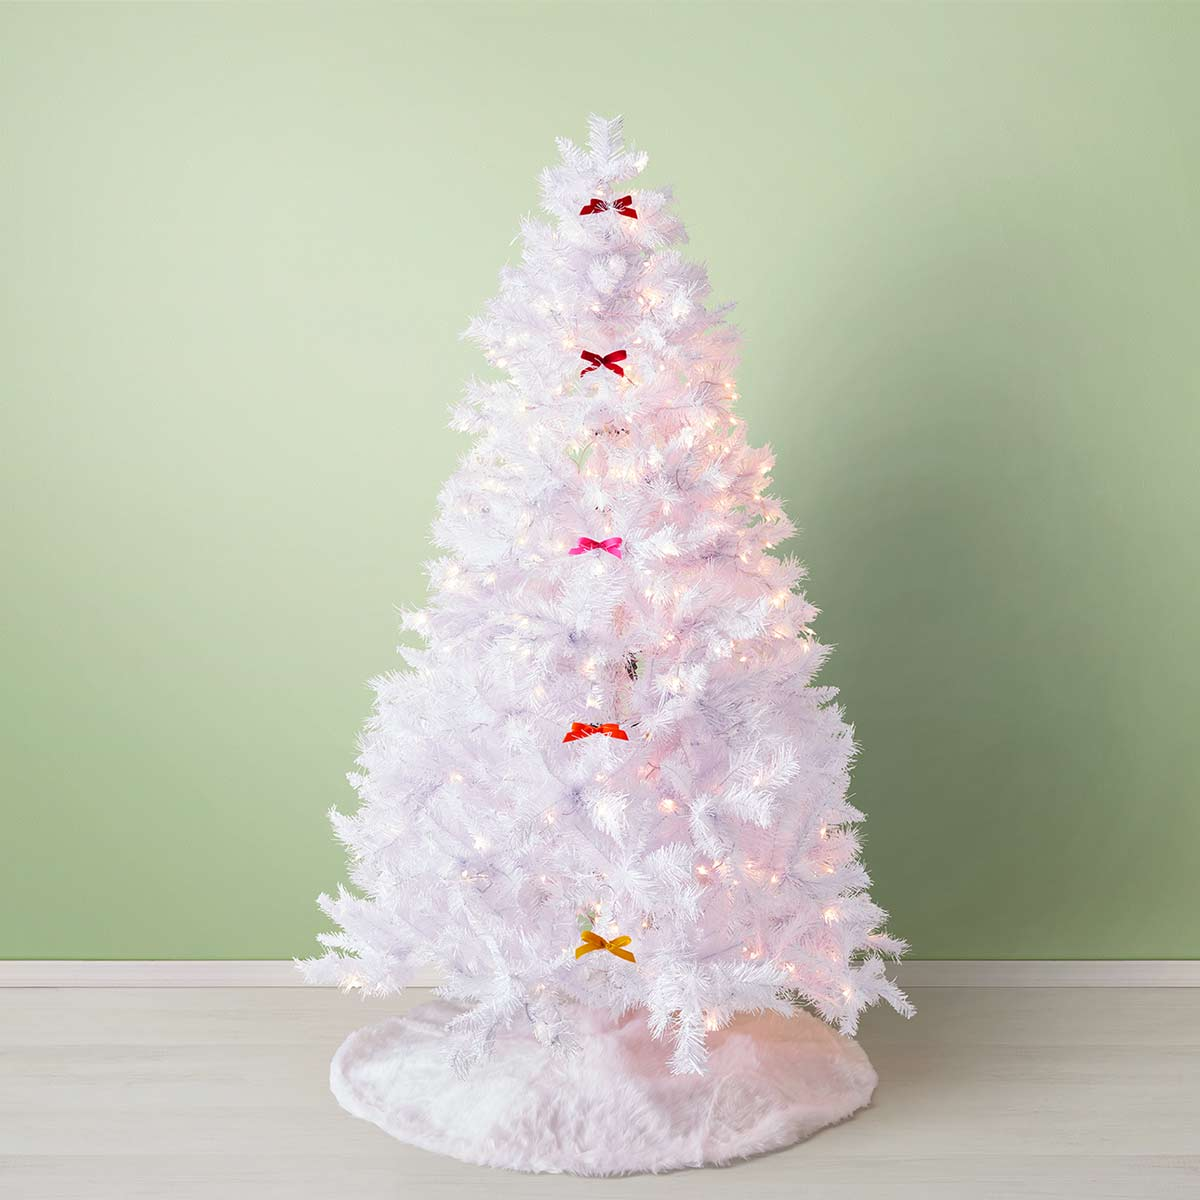 How To Decorate A Christmas Tree Professionally Professional Christmas Tree Ideas